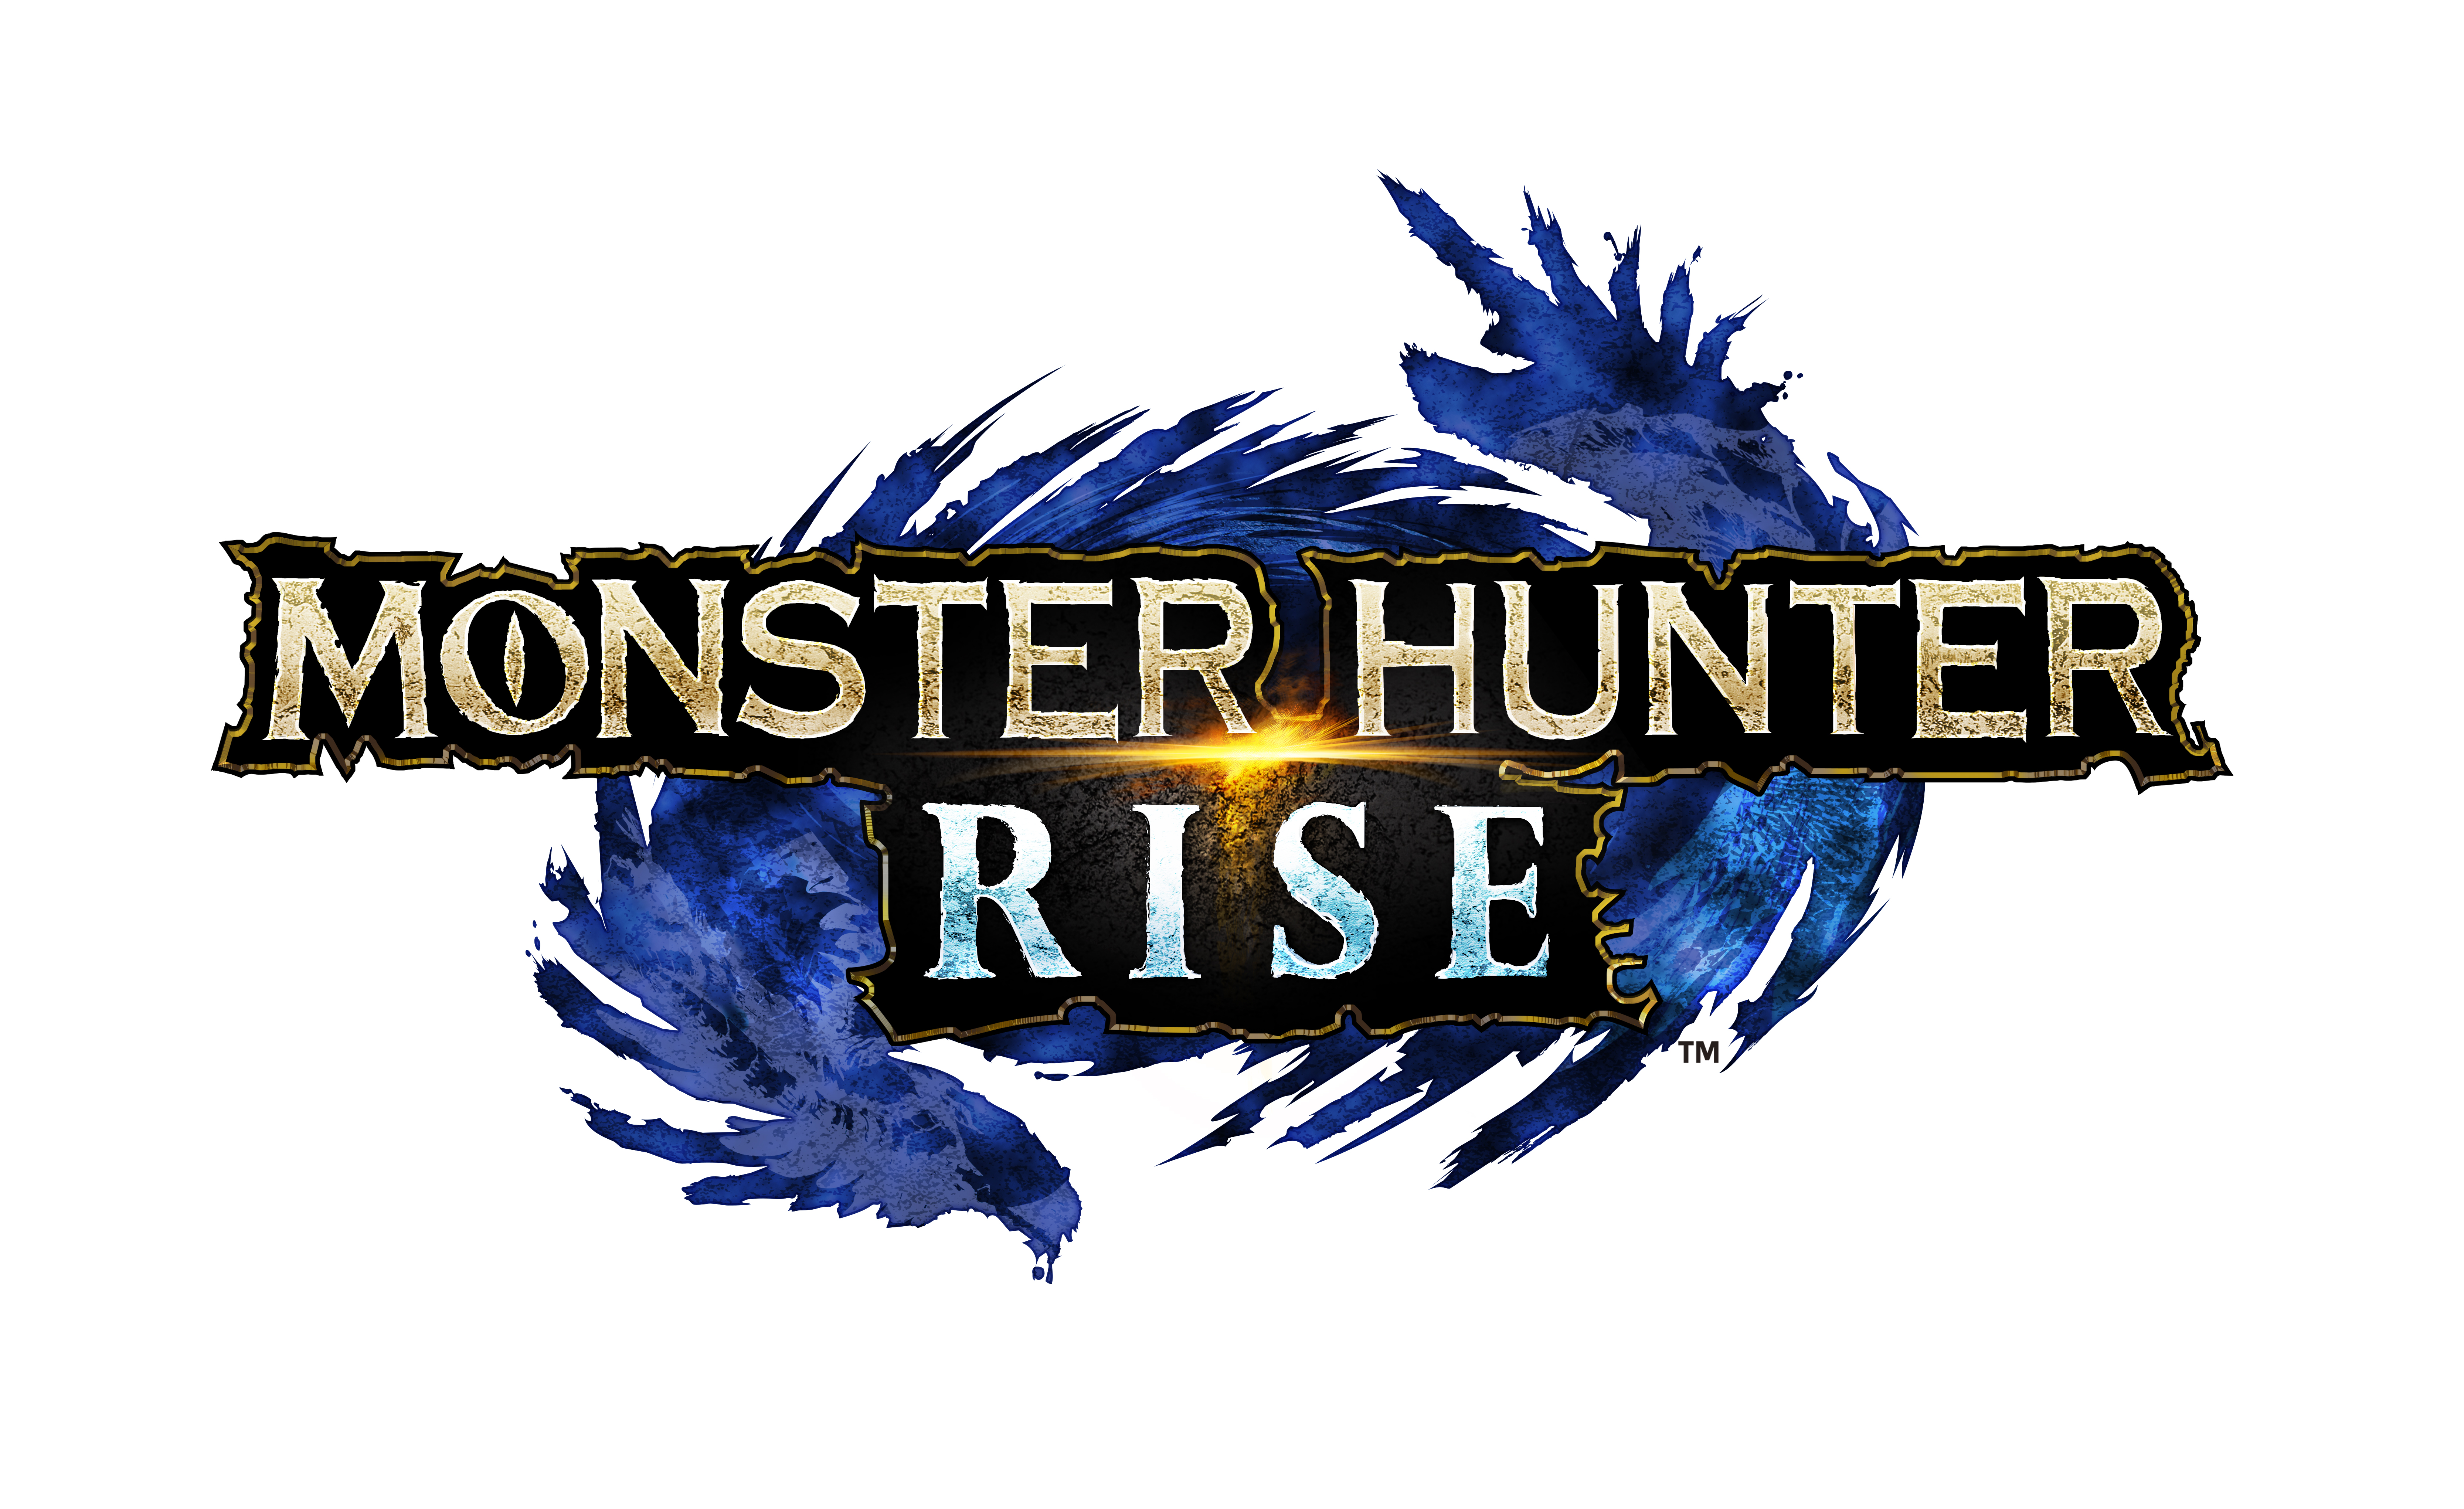 Monster Hunter Rise: Capcom reveals details about the spin-off